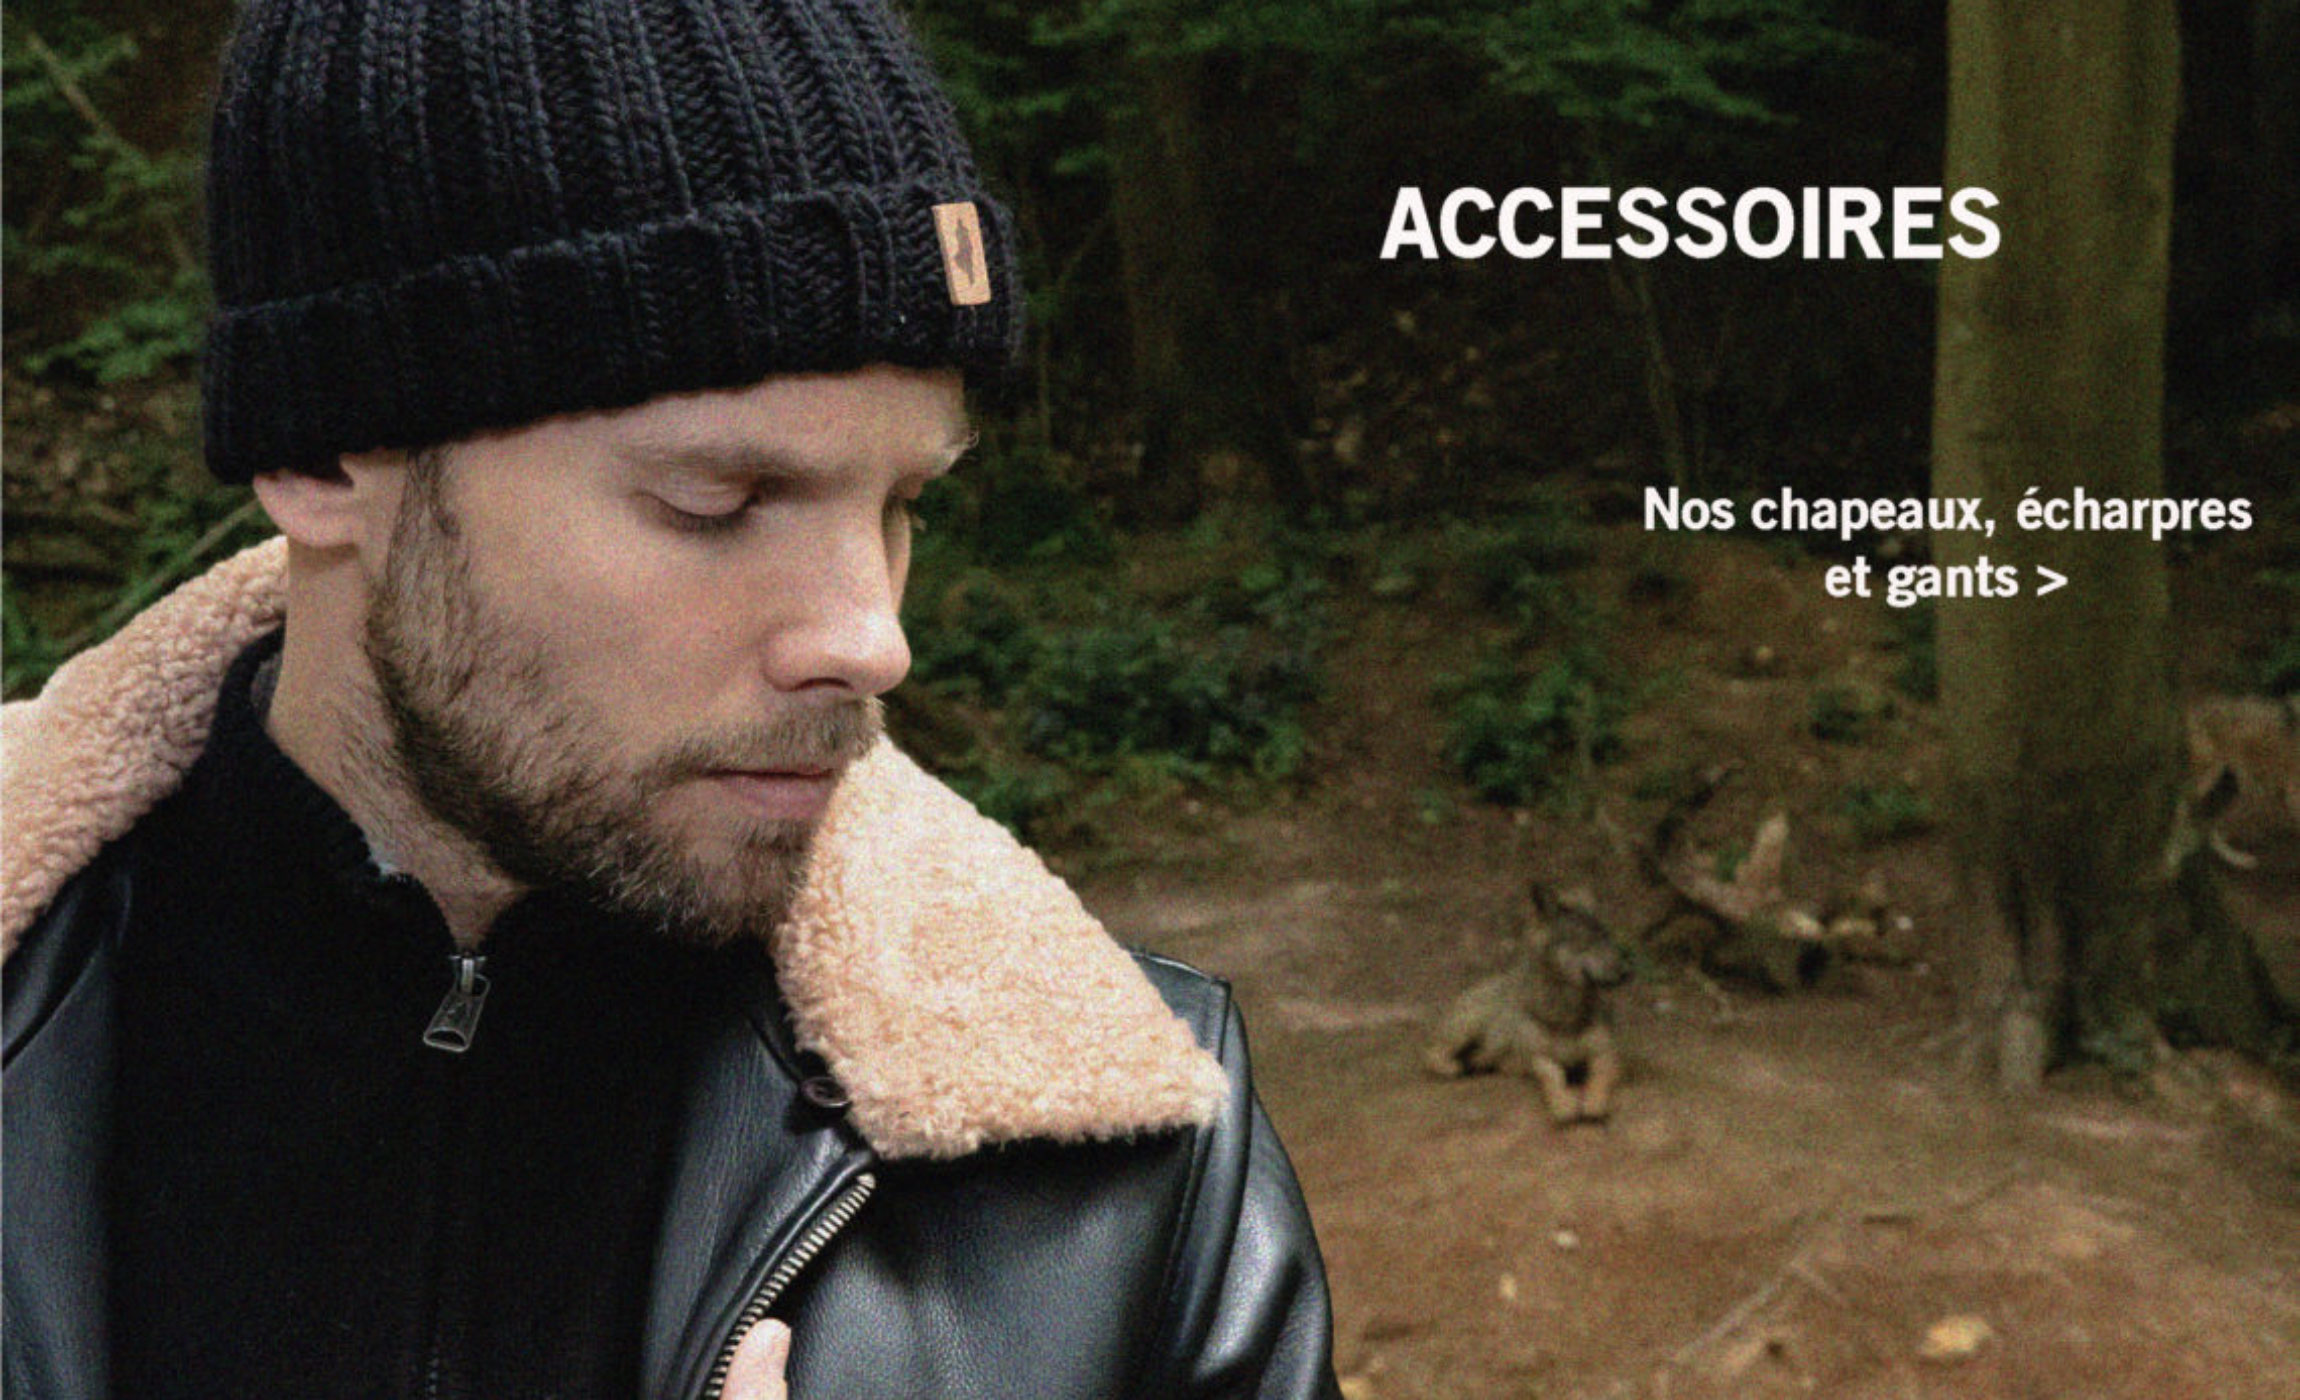 accessories homepage new FR soldes